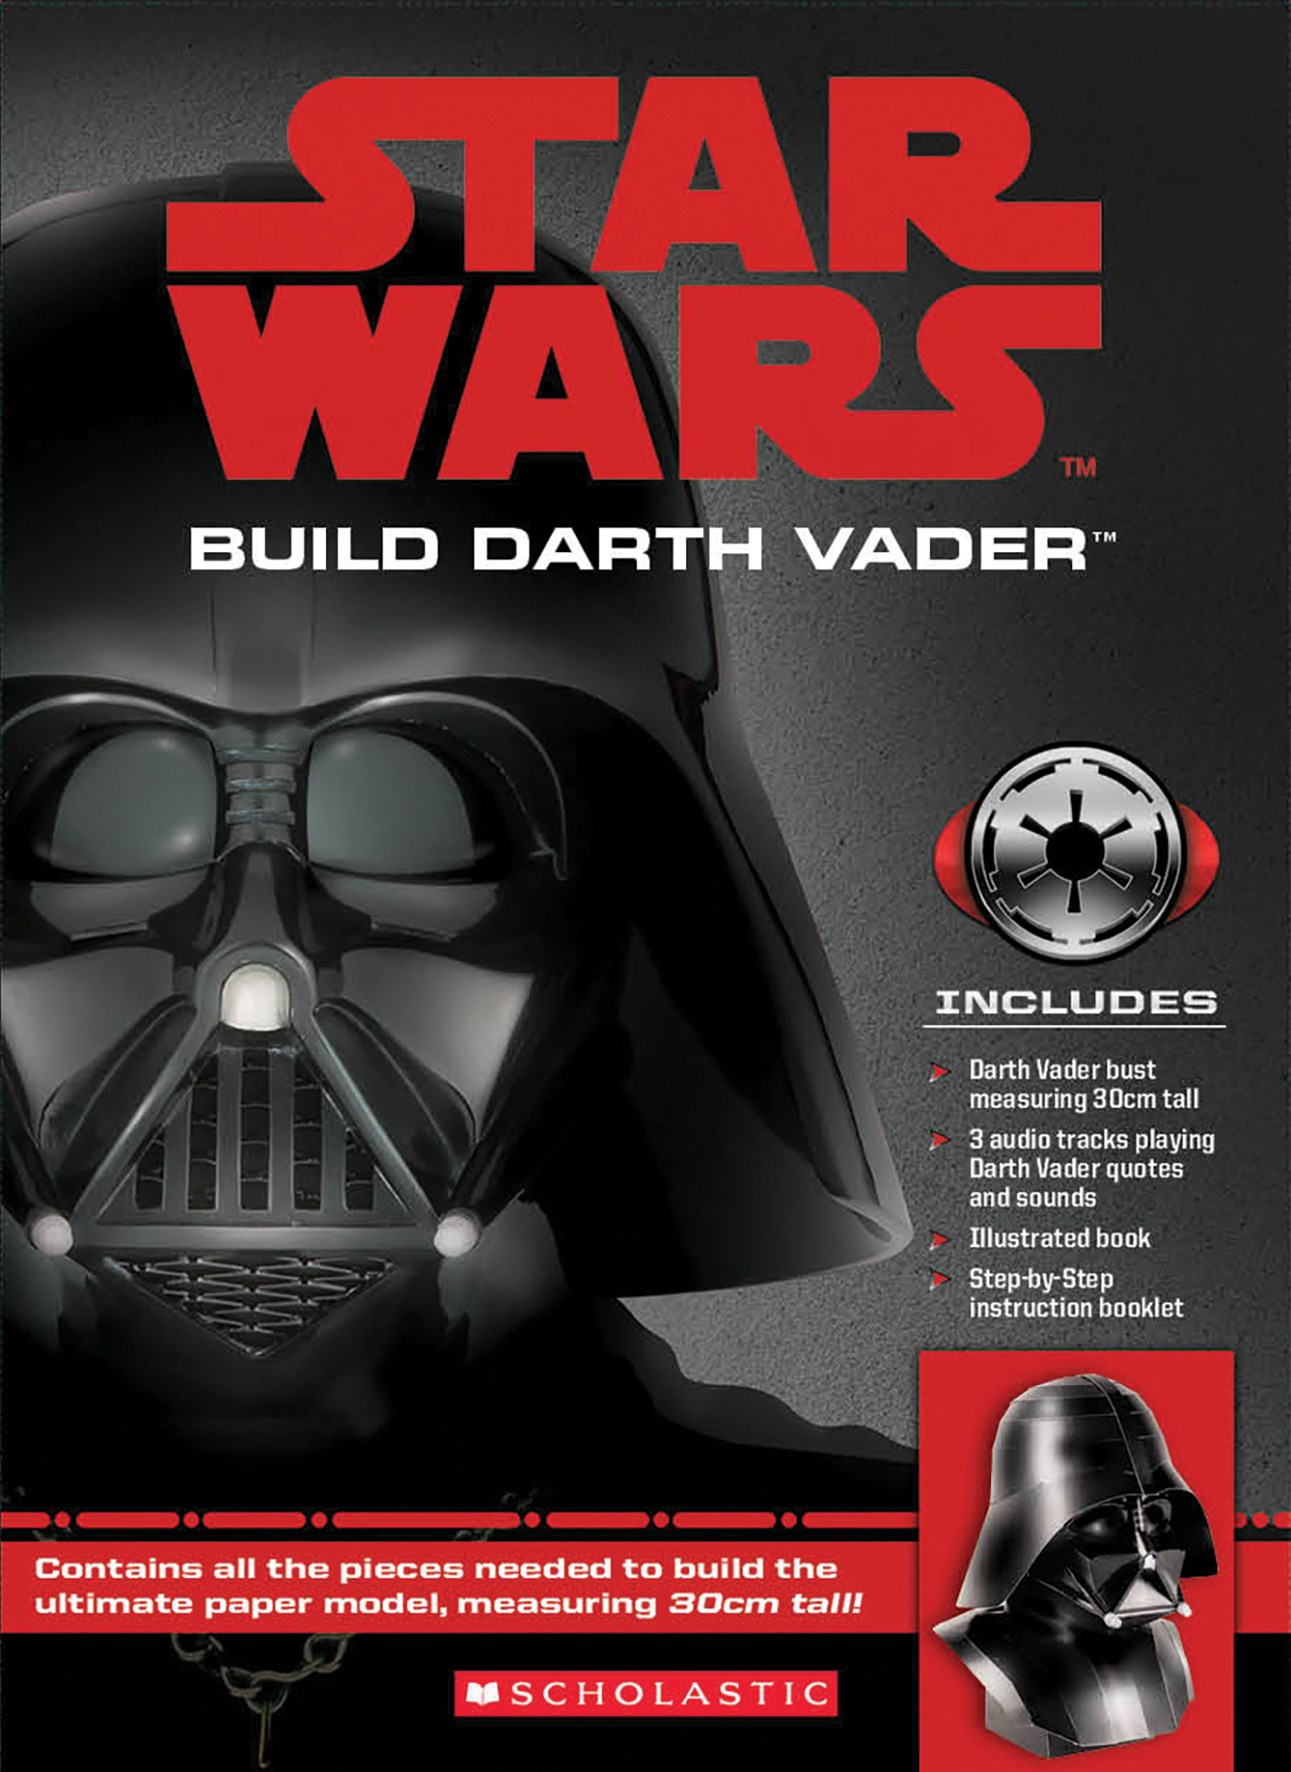 Star Wars: Ultimate Darth Vader Papercraft Kit